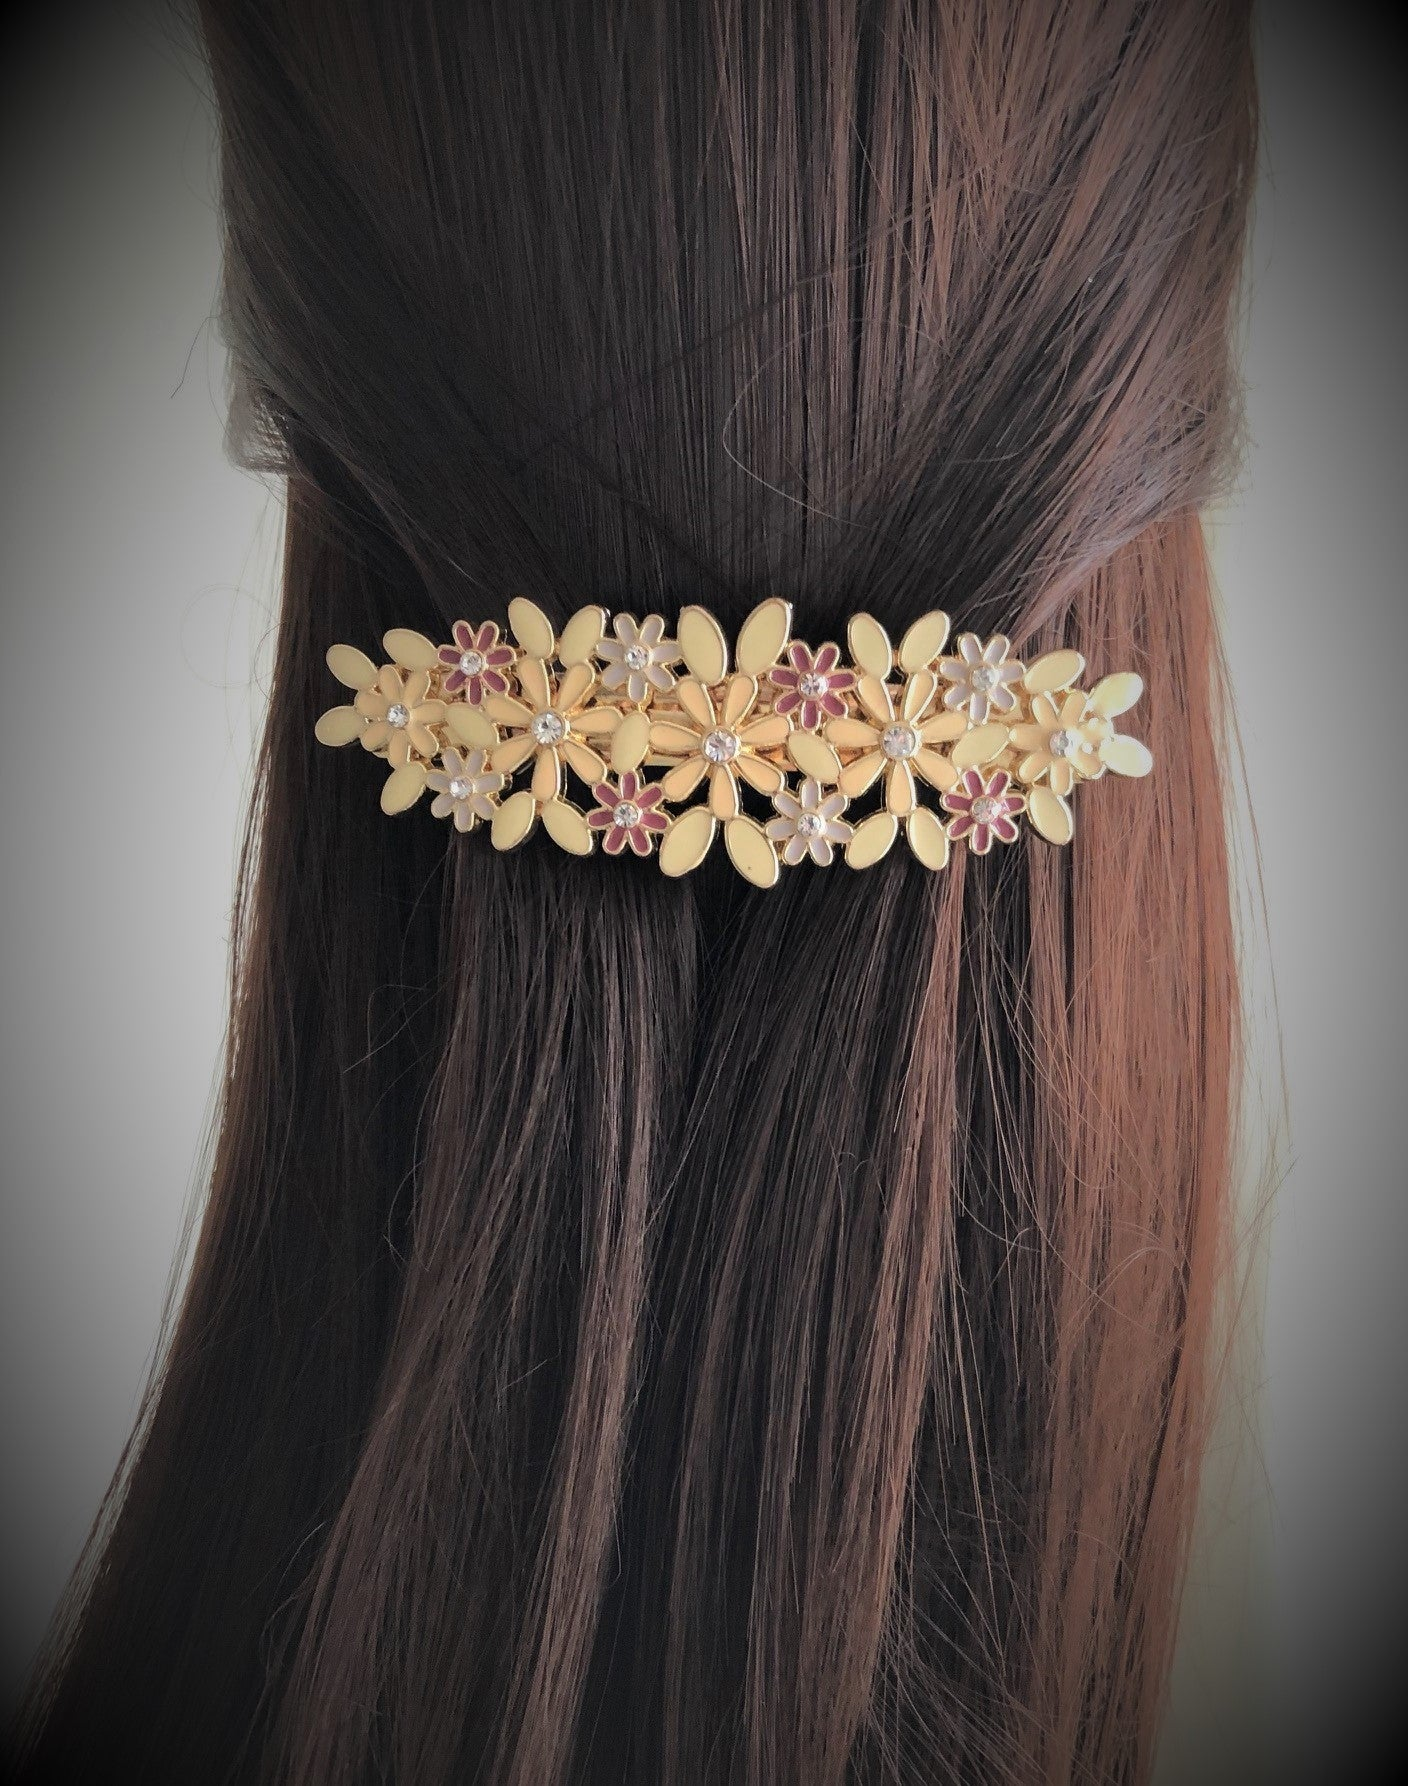 Floral Hair Clip in Mauve